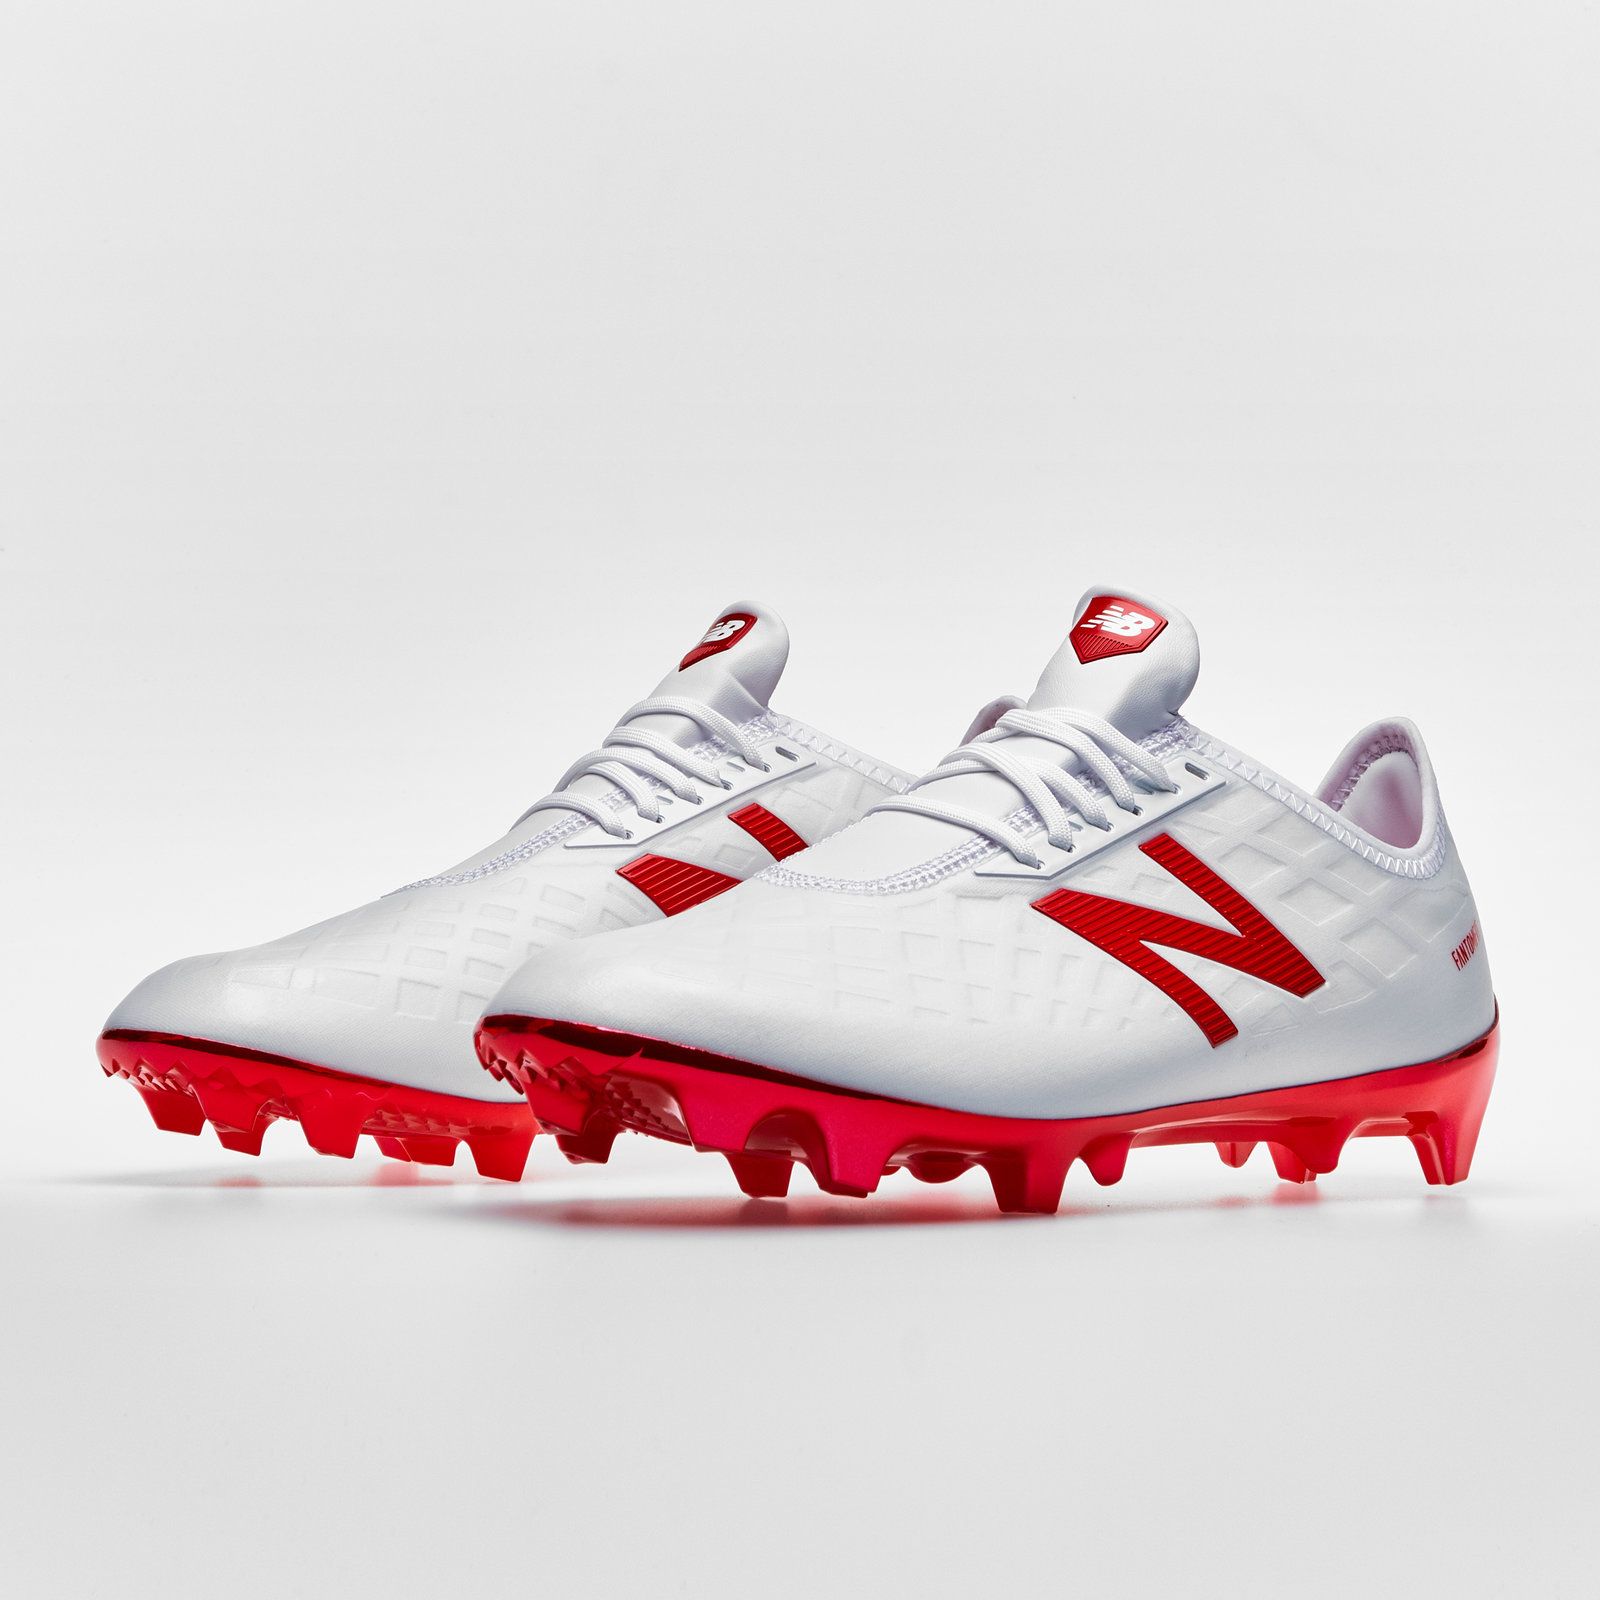 3cce512ea Details about New Balance Mens Furon 4.0 Pro Firm Ground World Cup Football  Boots Trainers